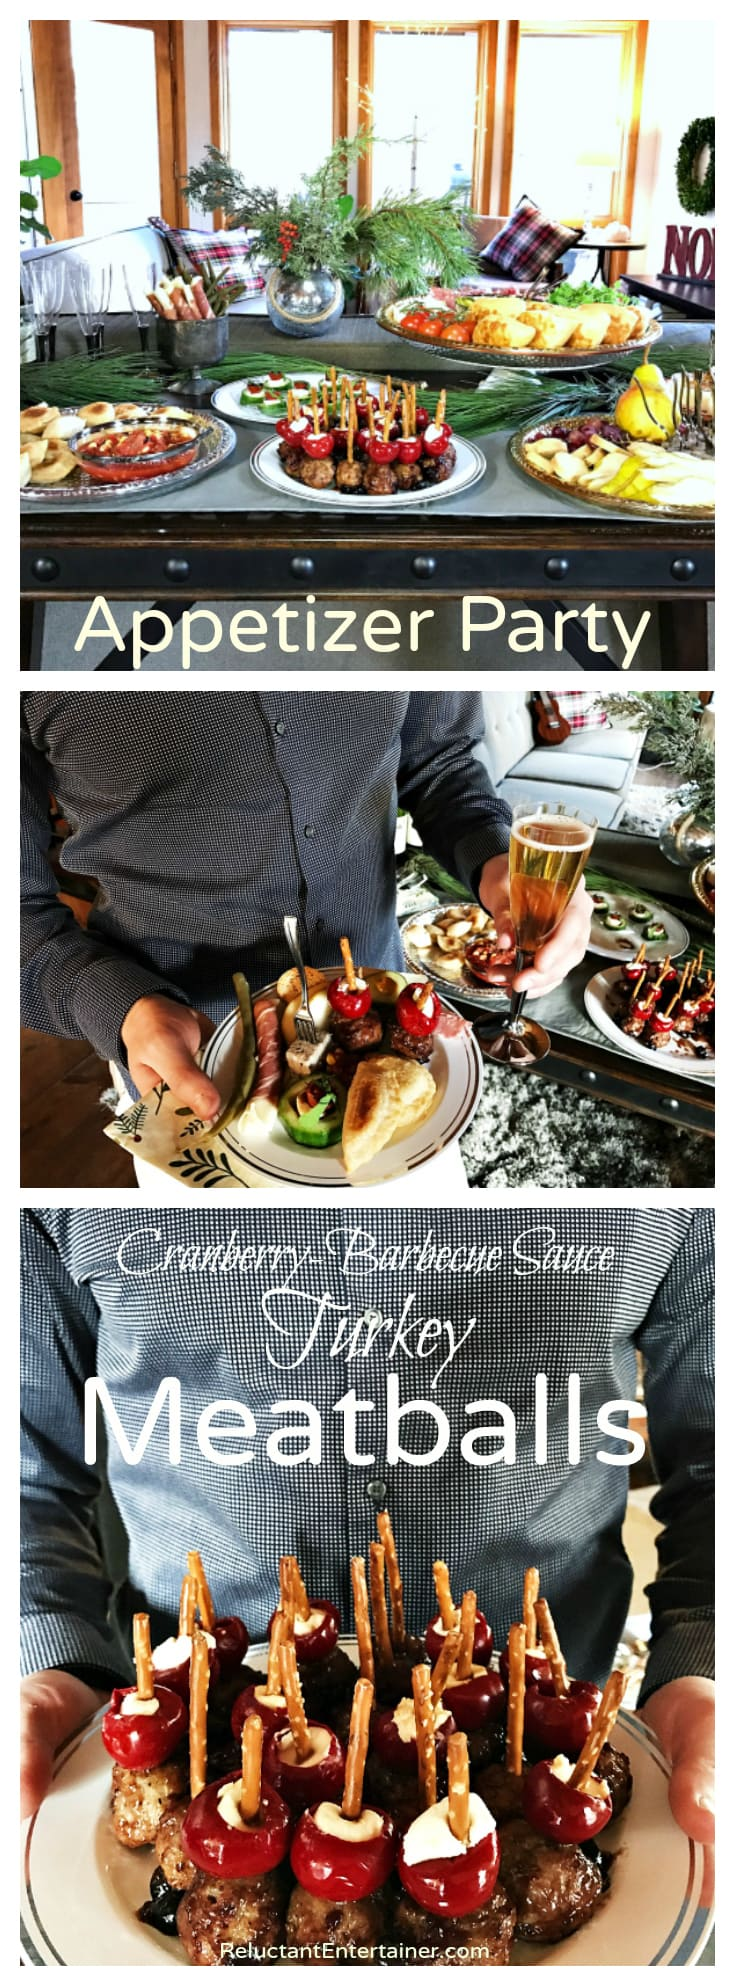 Cranberry-Barbecue Sauce Turkey Meatballs